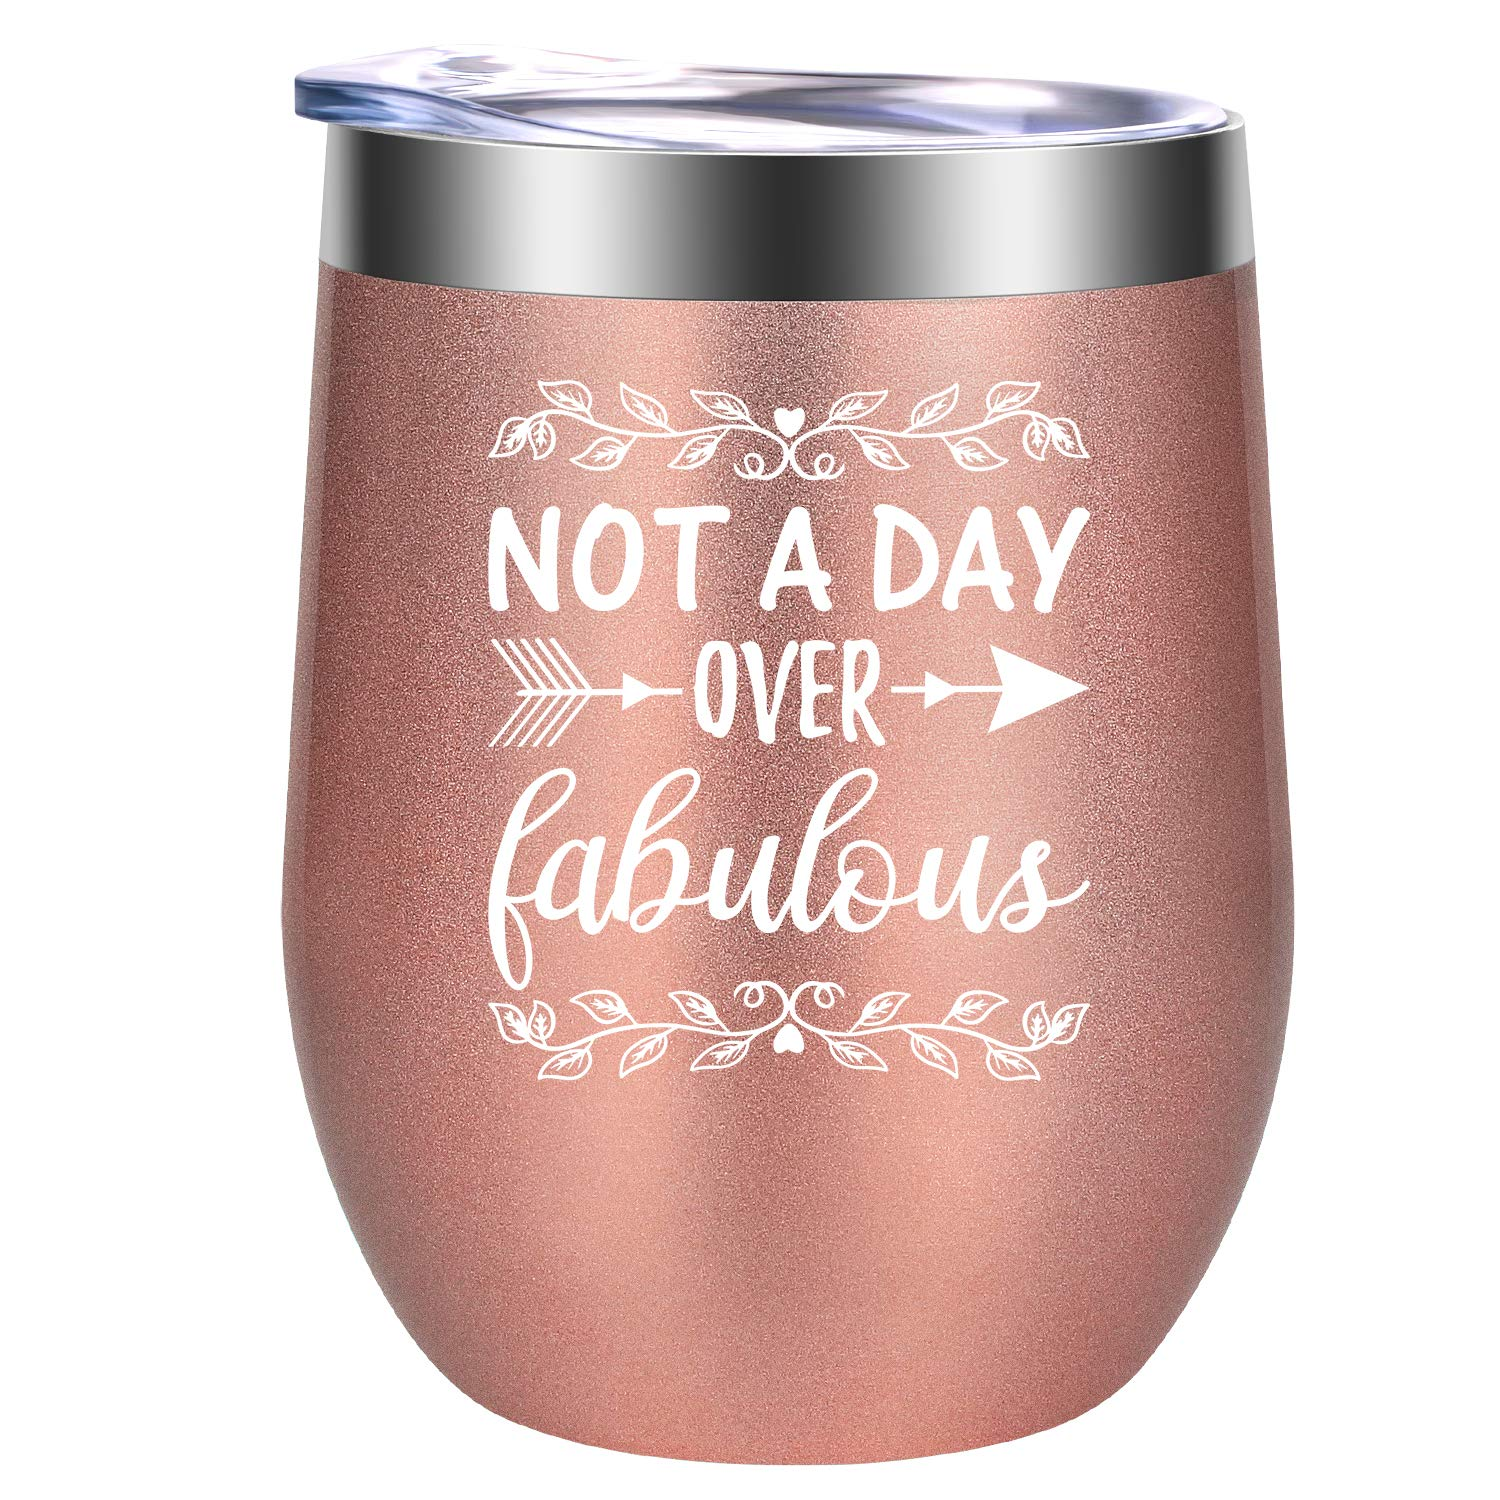 Not a Day over Fabulous - Funny Unique Birthday Wine Gifts Ideas for Women, Her, BFF Best Friend, Mom, Wife, Sisters, Grandma, Coworkers - GSPY 12 oz Stainless Steel Stemless Wine Tumbler Cup with Lid